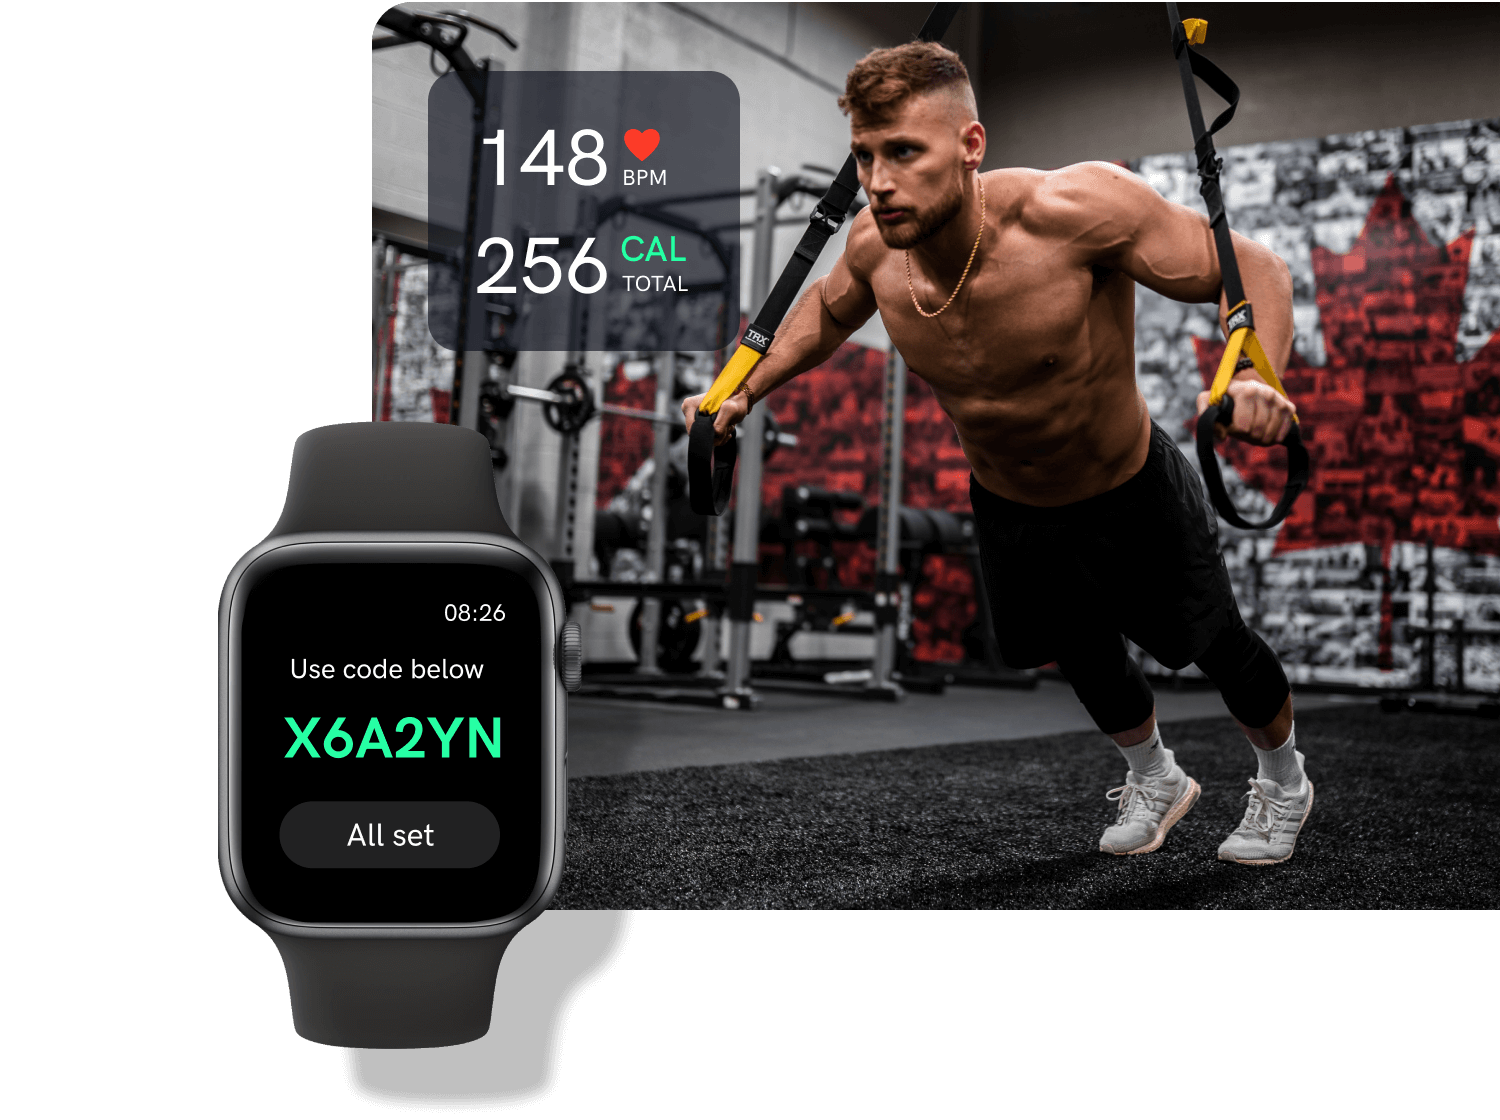 Tracking workout with Apple Watch App